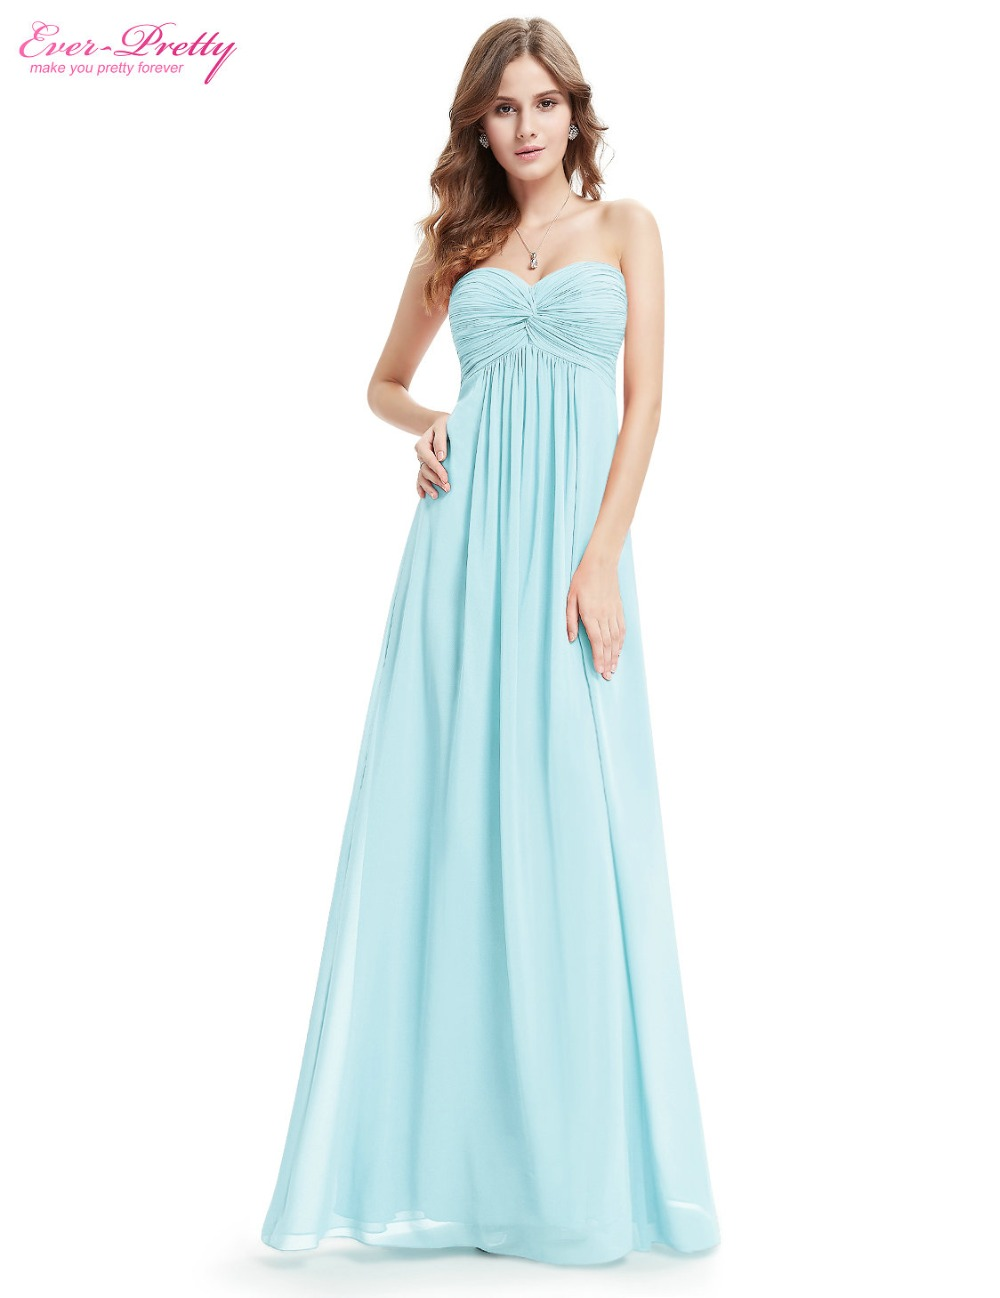 Strapless bridesmaid dress Wedding Party Ever Pretty HE08840 ...